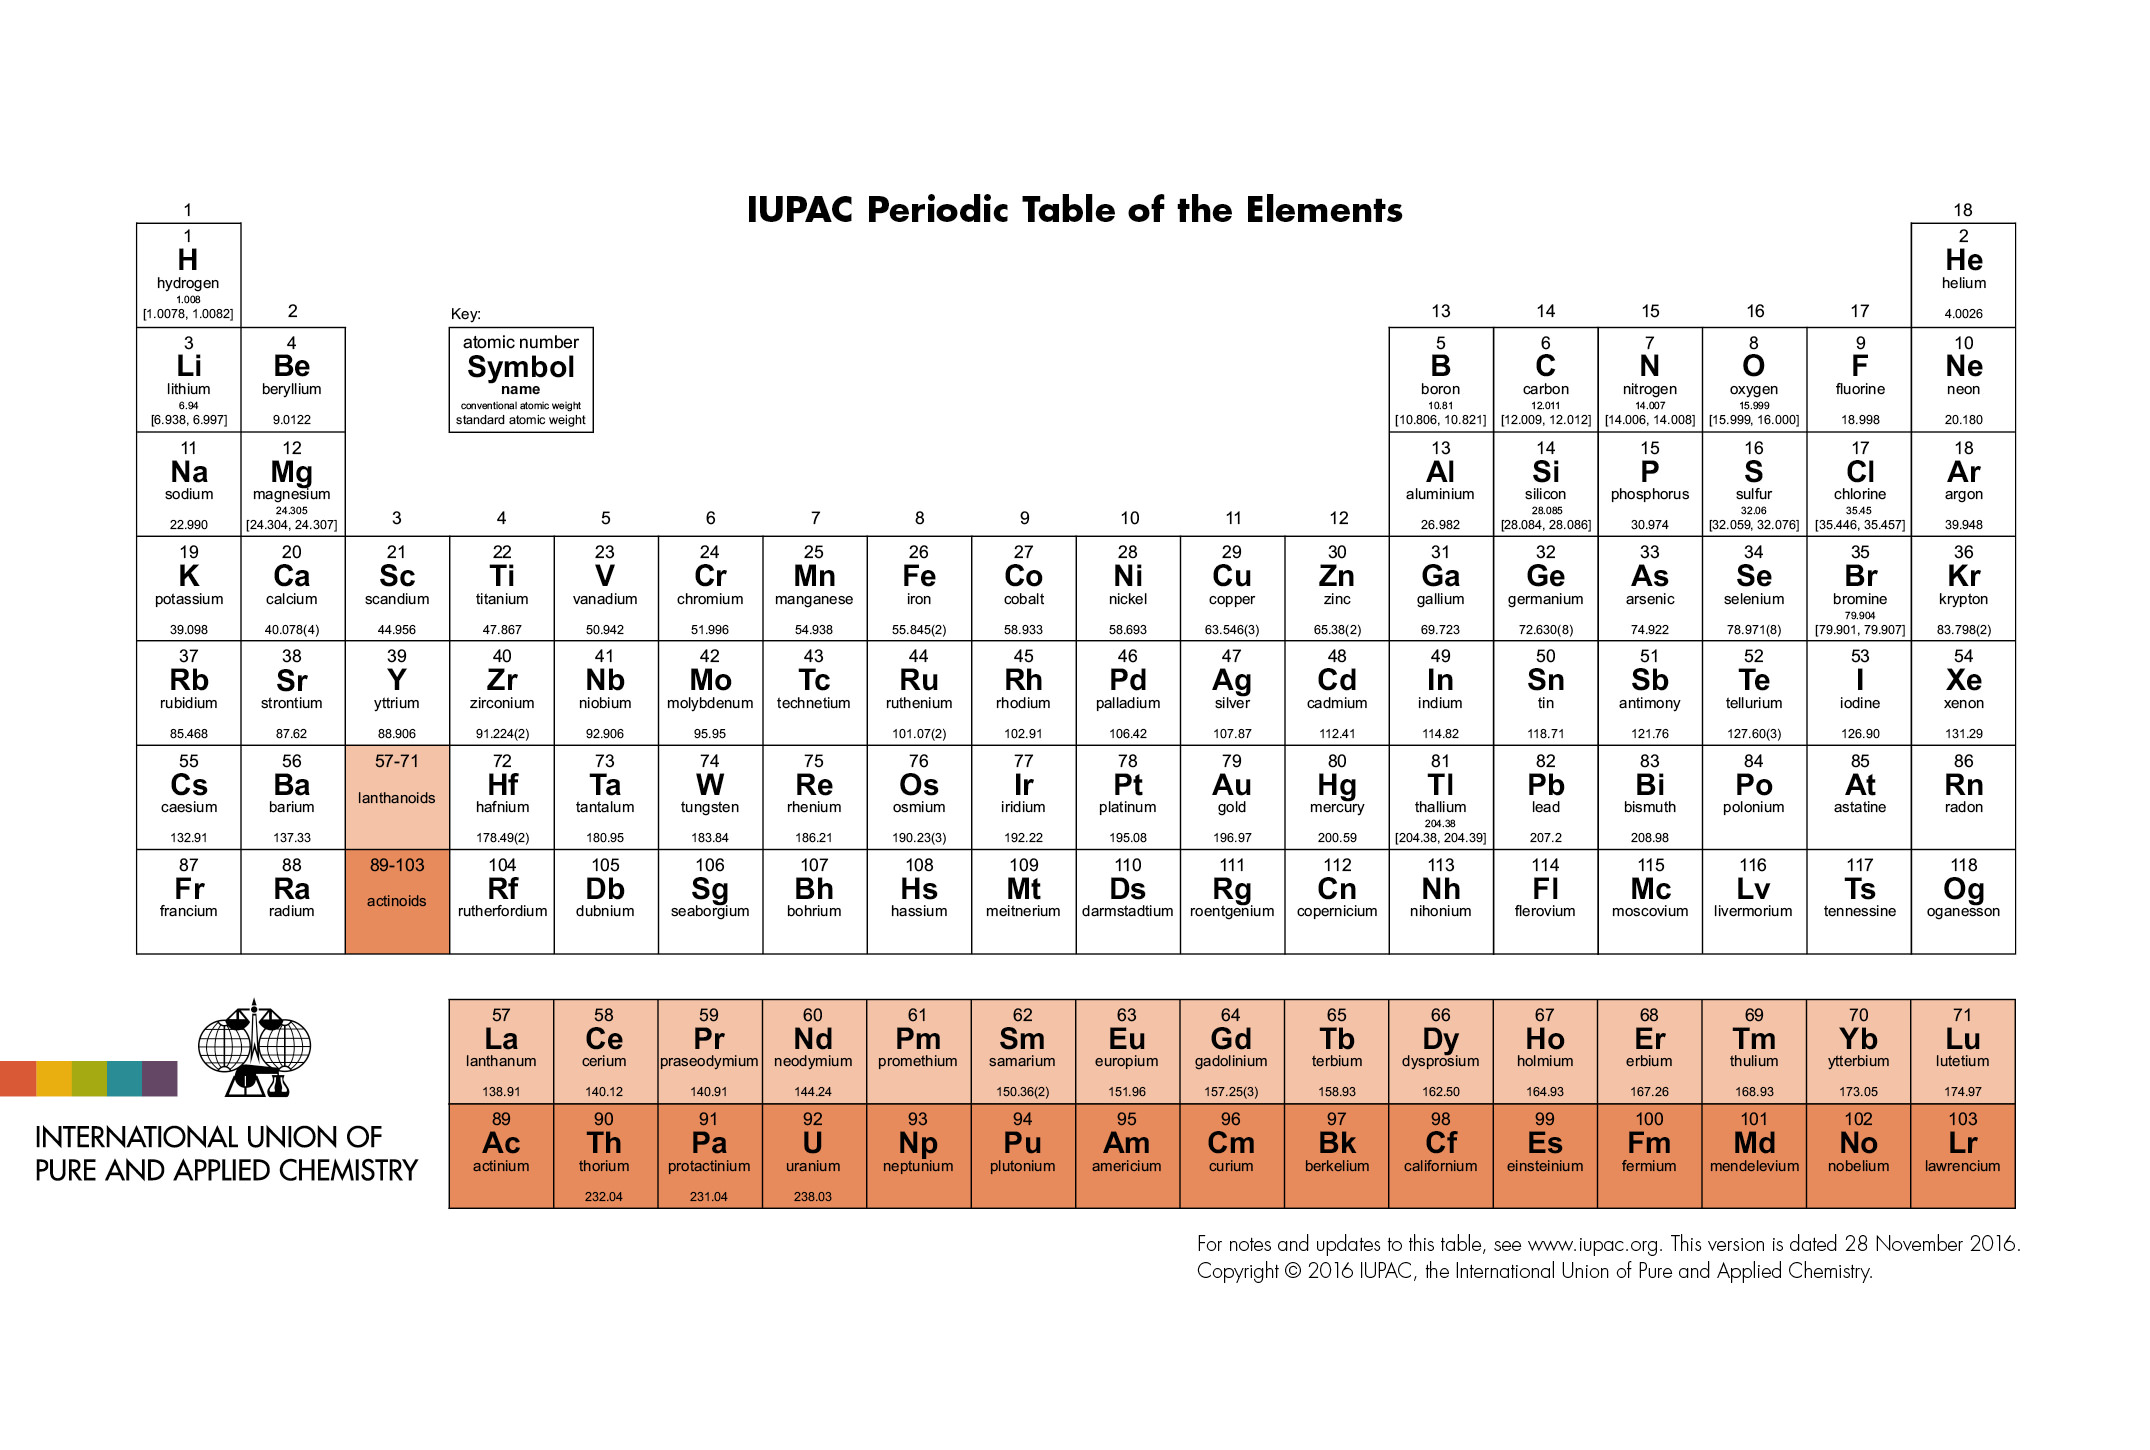 Iupac international union of pure and applied chemistry periodic periodic table of elements gamestrikefo Choice Image